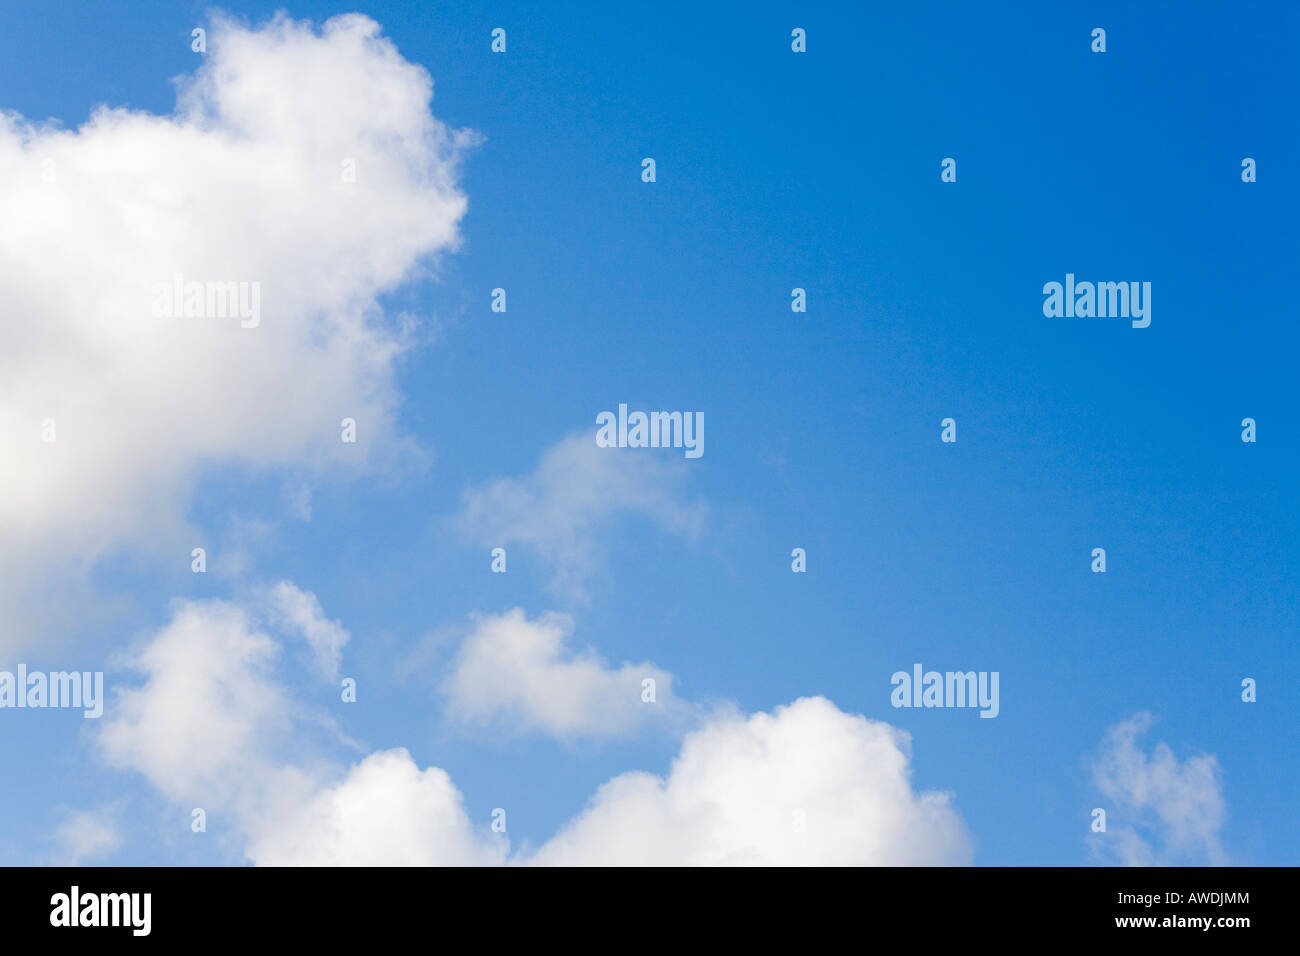 Fluffy white cumulus clouds in a blue sky indicating clement summer weather. England UK Britain - Stock Image